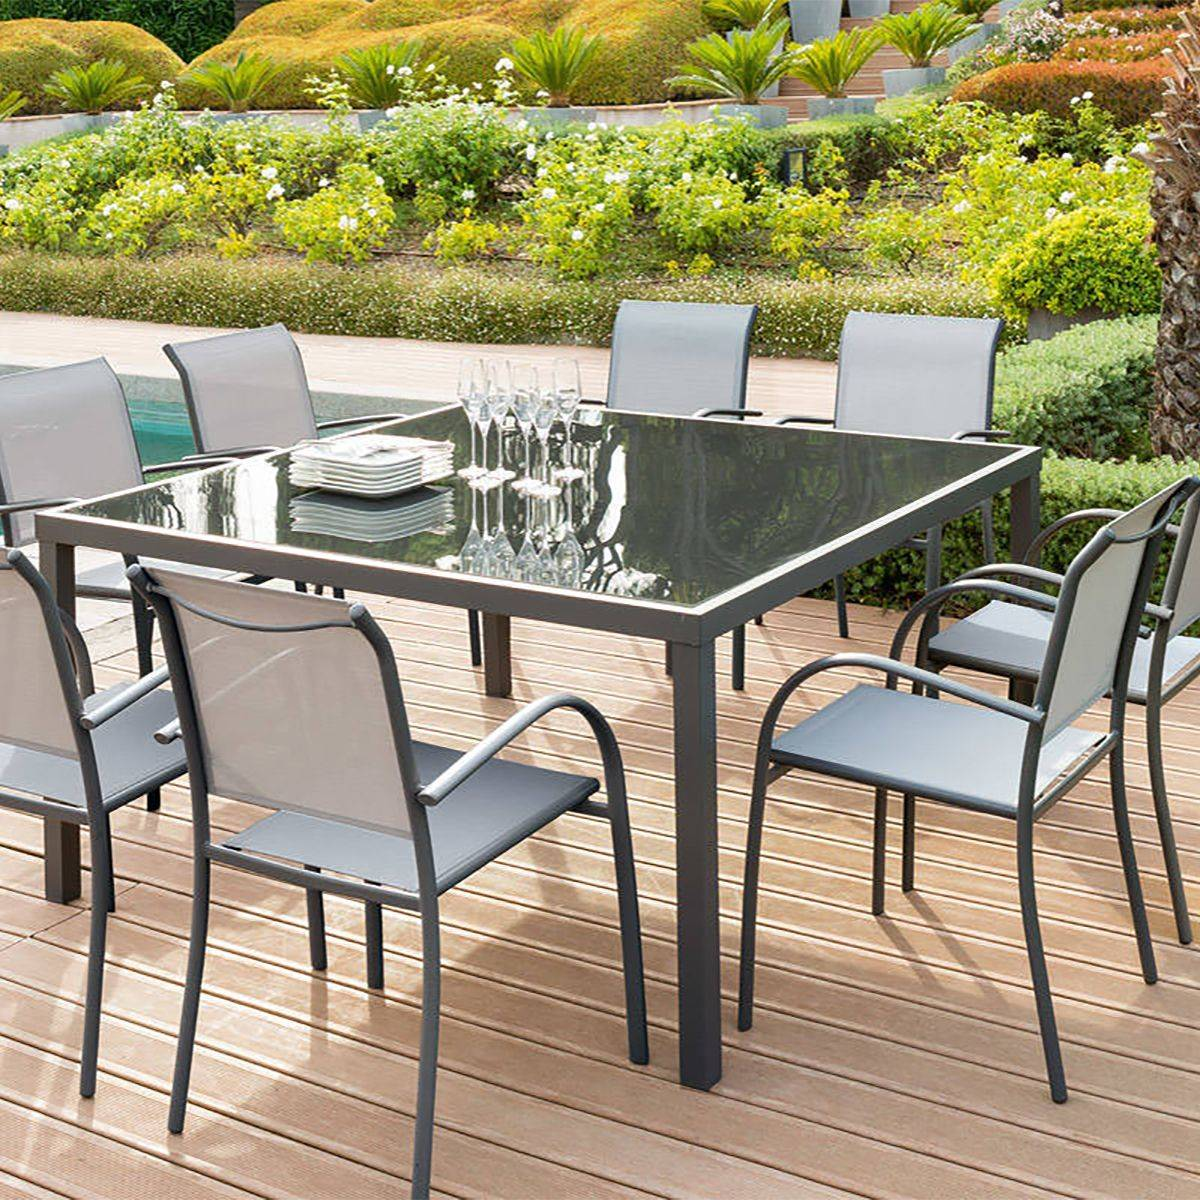 Table de jardin carr e piazza verre anthracite graphite for Table en verre avec chaise